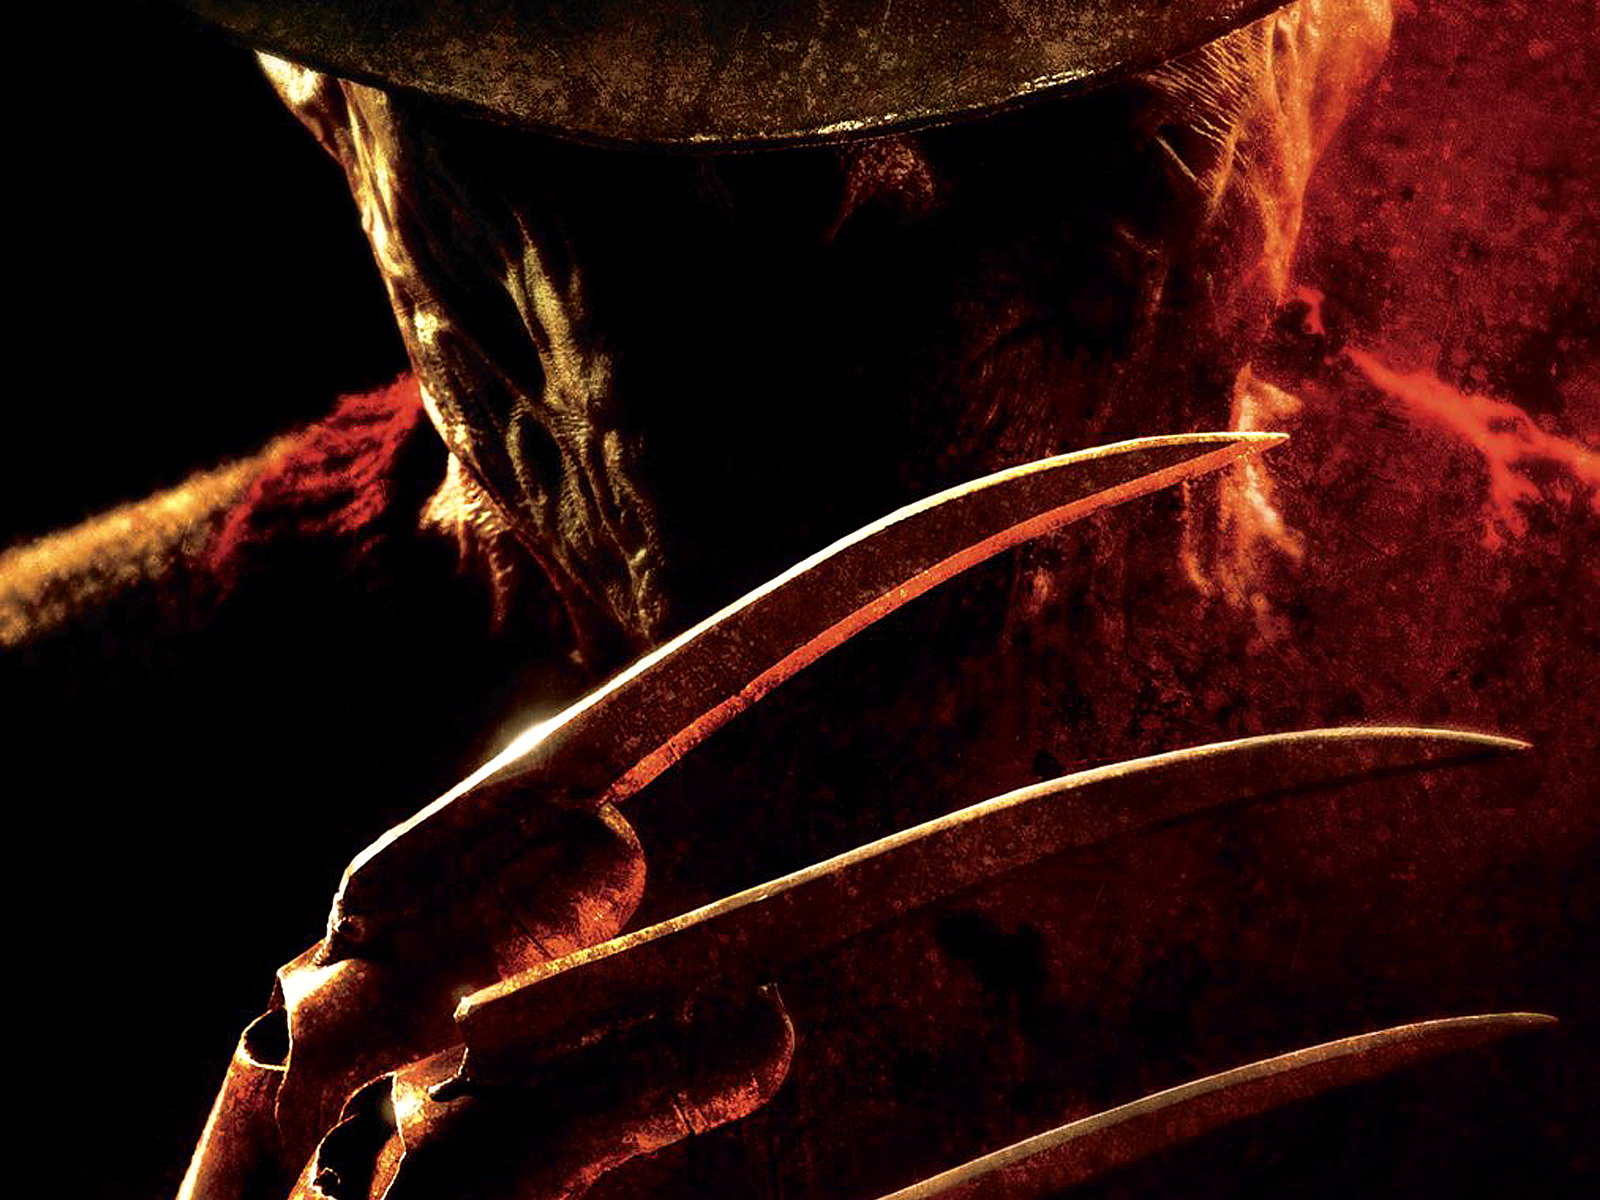 Freddy Kruger Dreamcatcher wallpapers and images 1600x1200